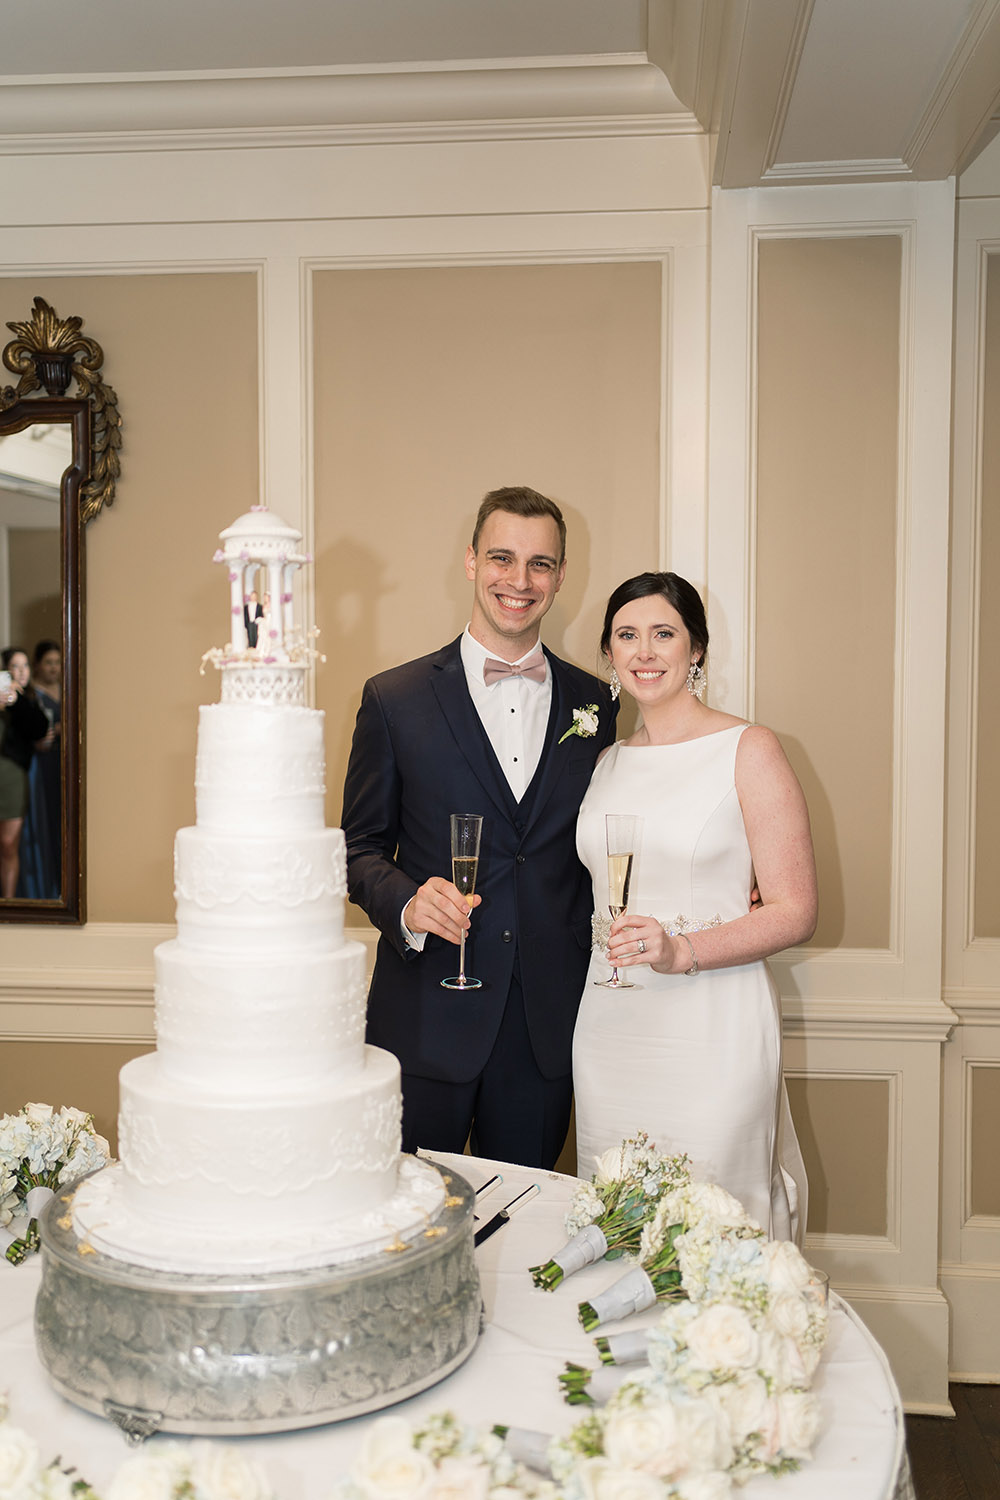 The newly weds toast by their wedding cake.